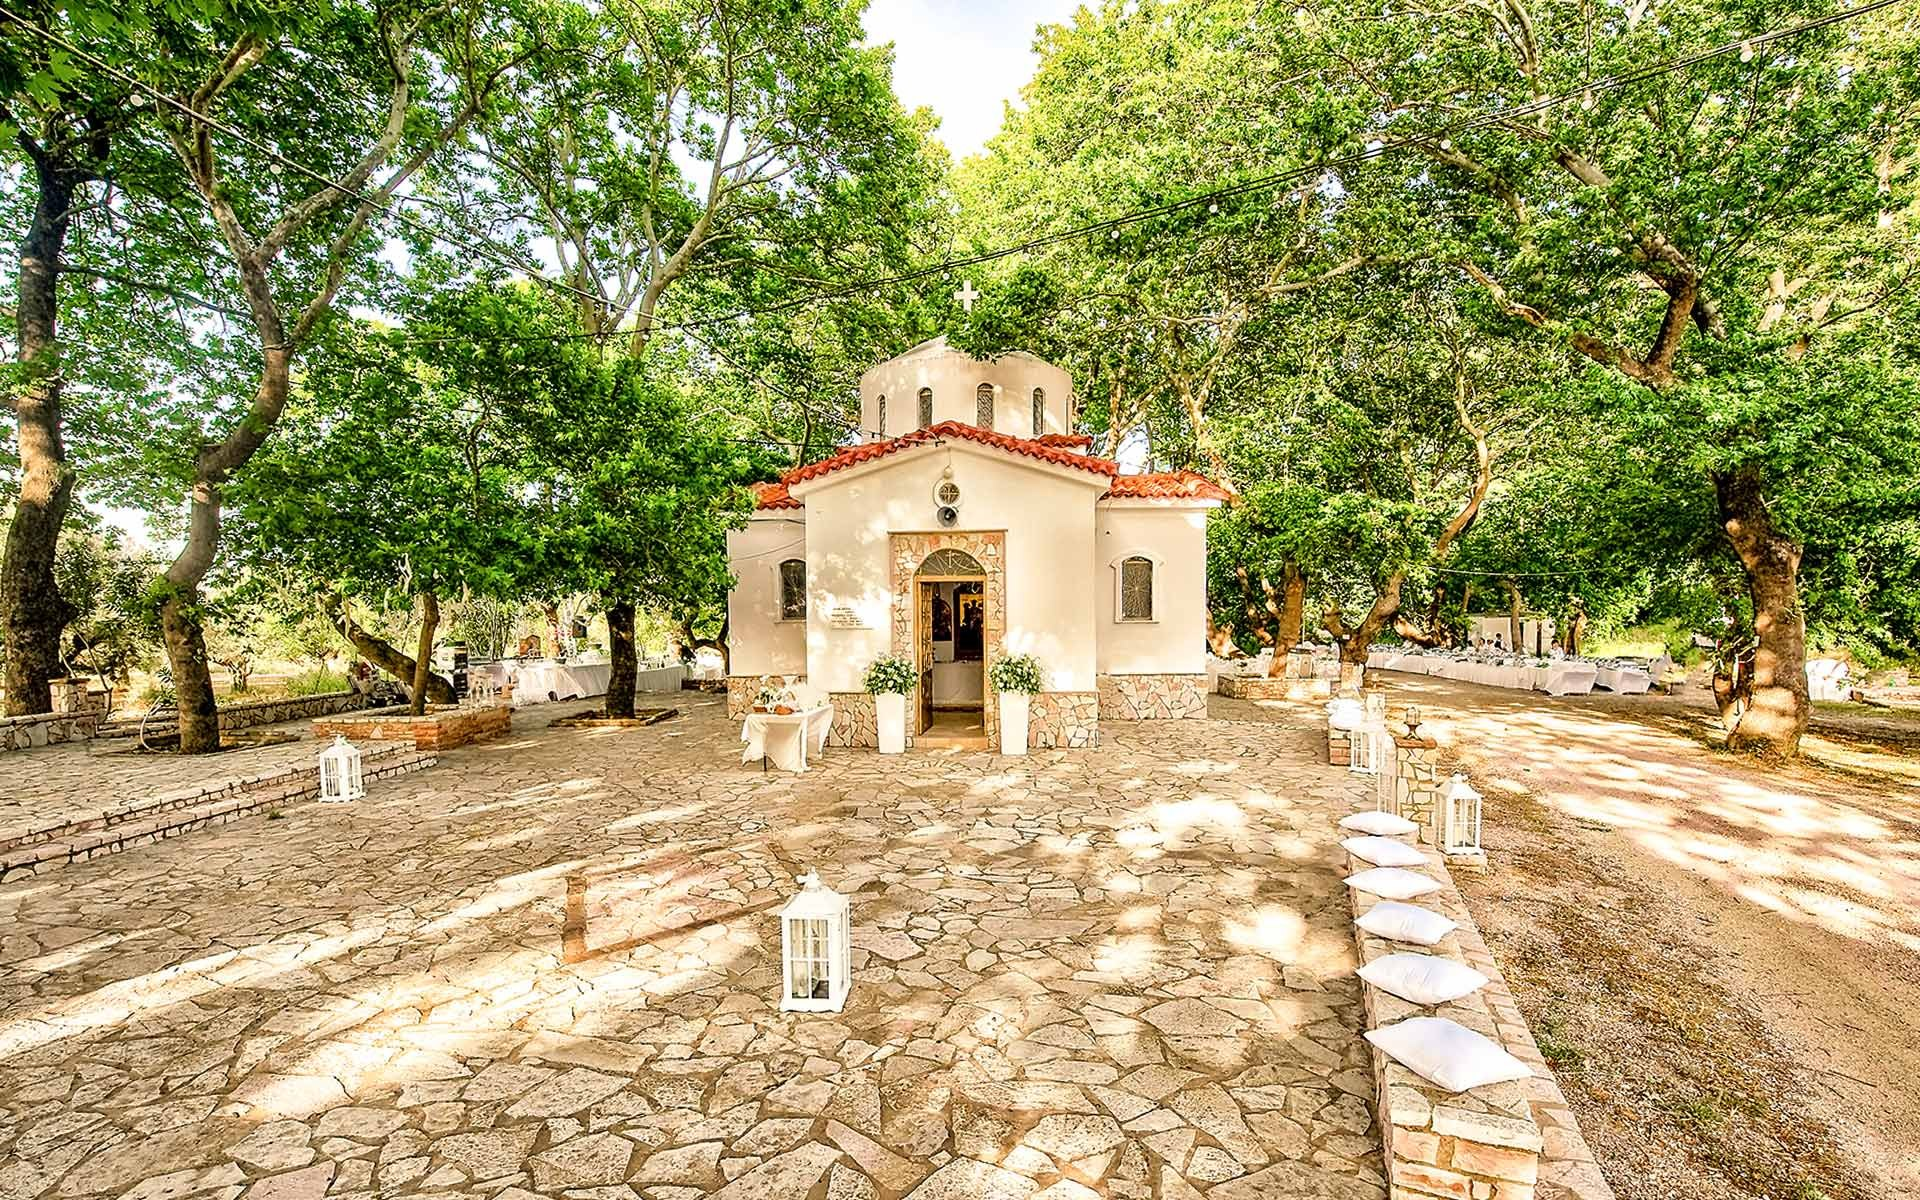 Wedding-in-Patra-in-the-amazing-pilgrimage-site-of-the-Church-of-Aghios-Anastasios